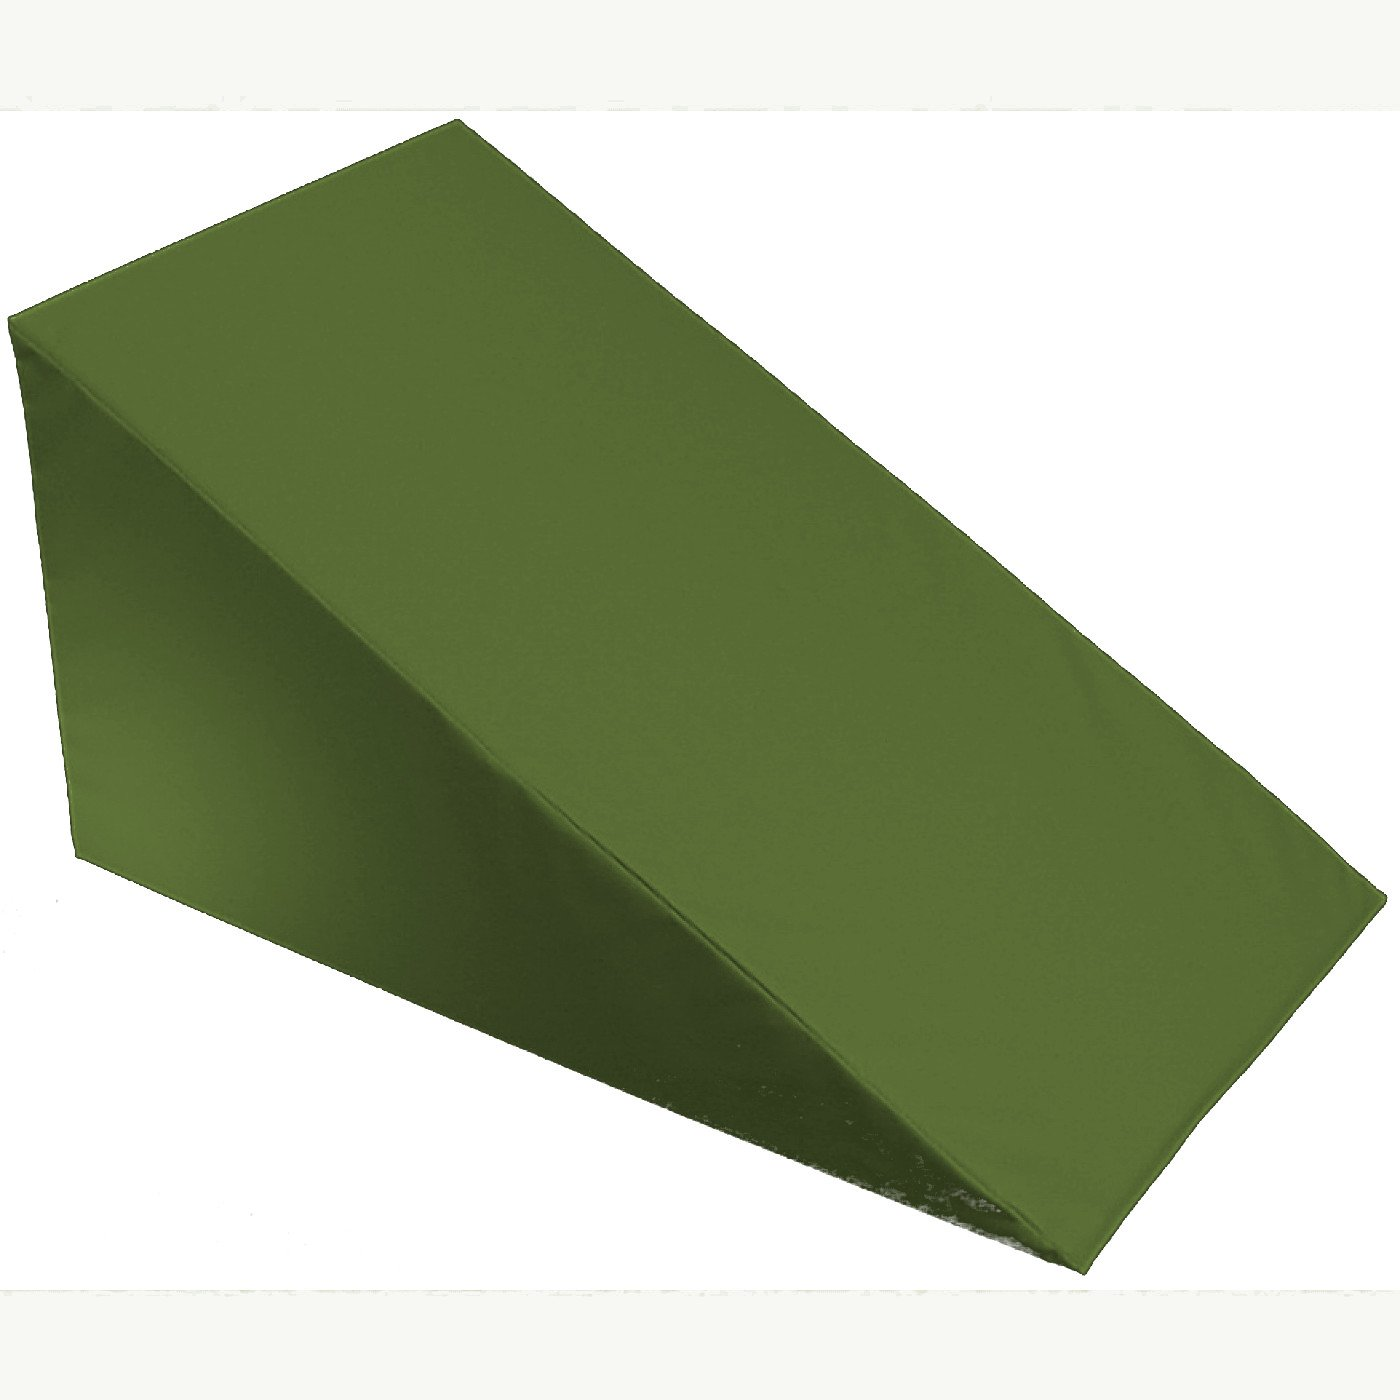 """7"""", 10"""", 12""""- inch Foam Bed Wedge Zippered Cover / Pillow Replacement COVER (24'' X 24'' X 12'', Olive)"""